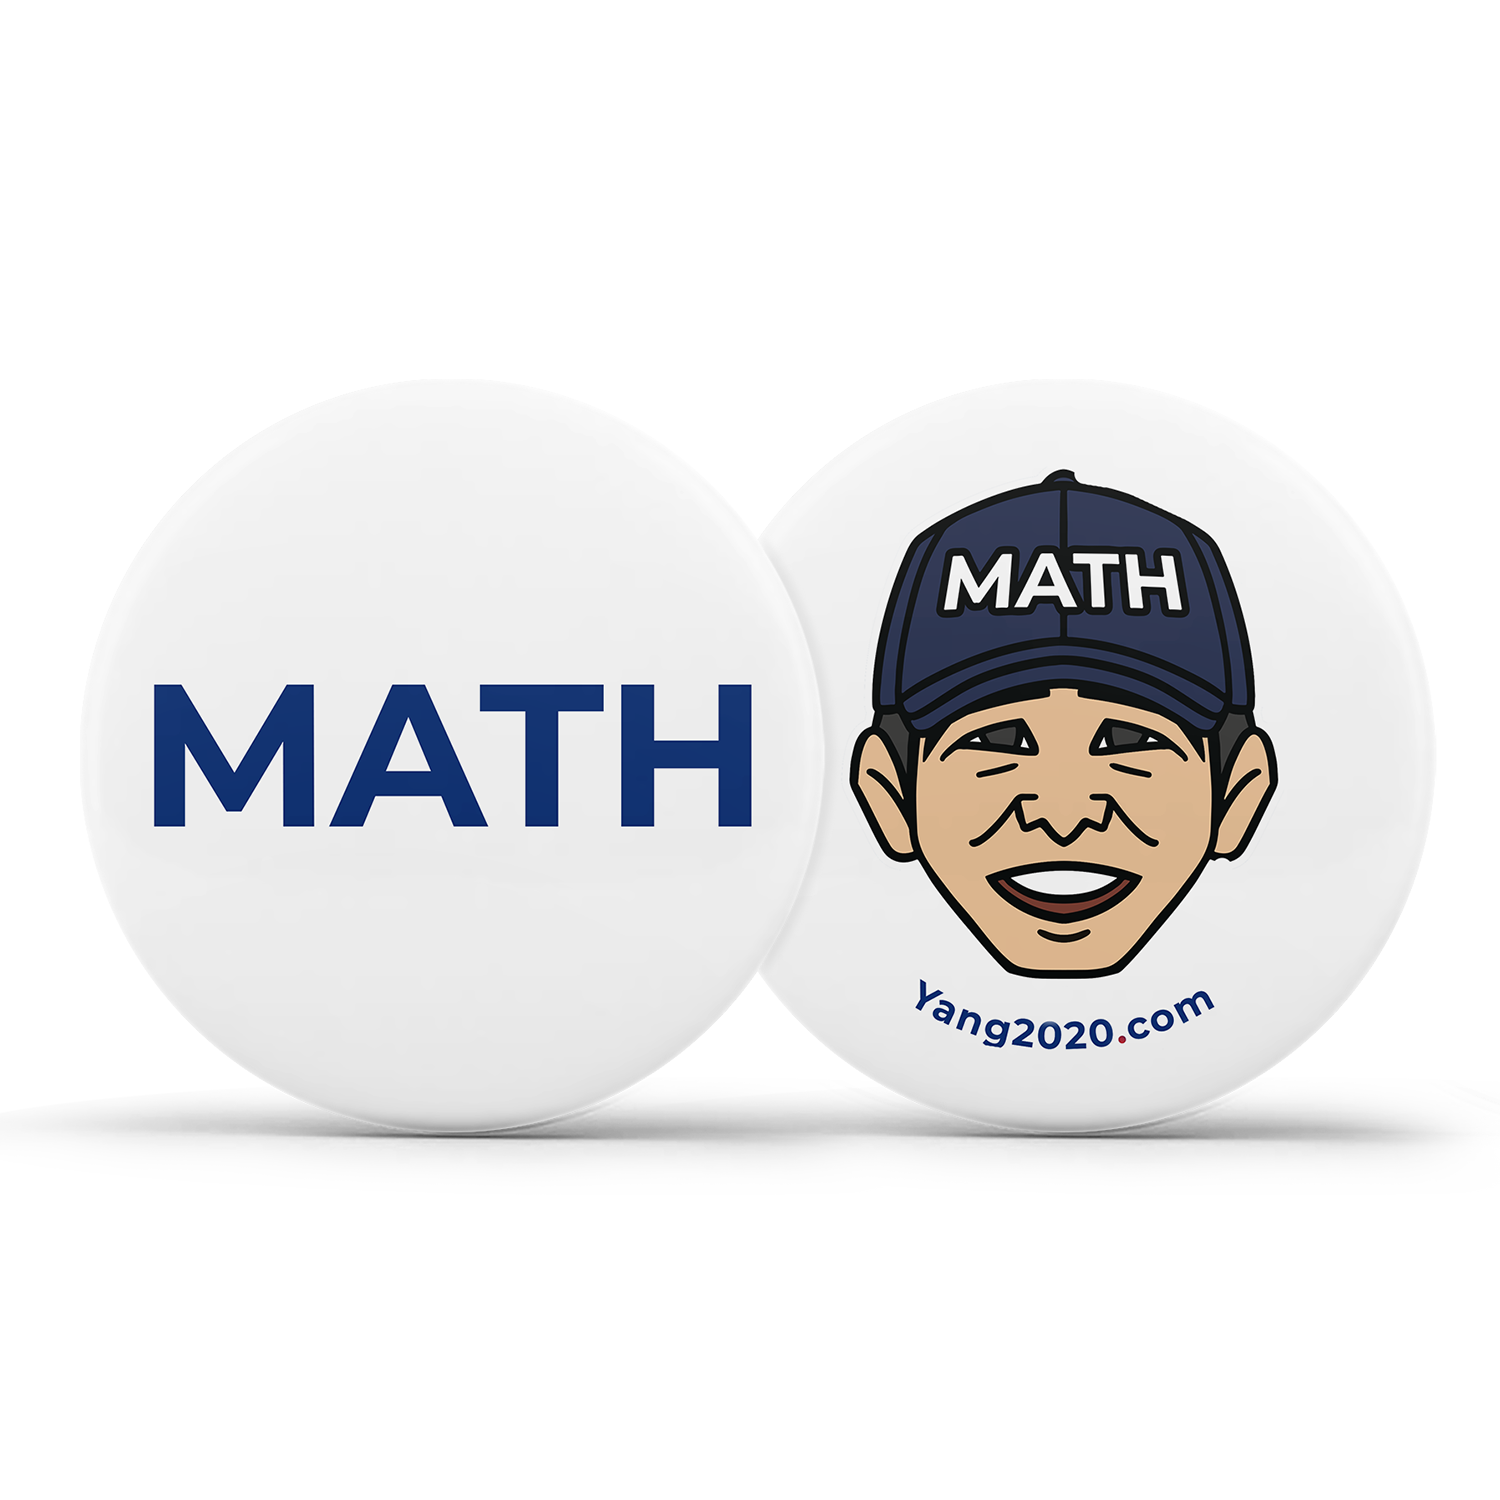 MATH_ButtonW.png